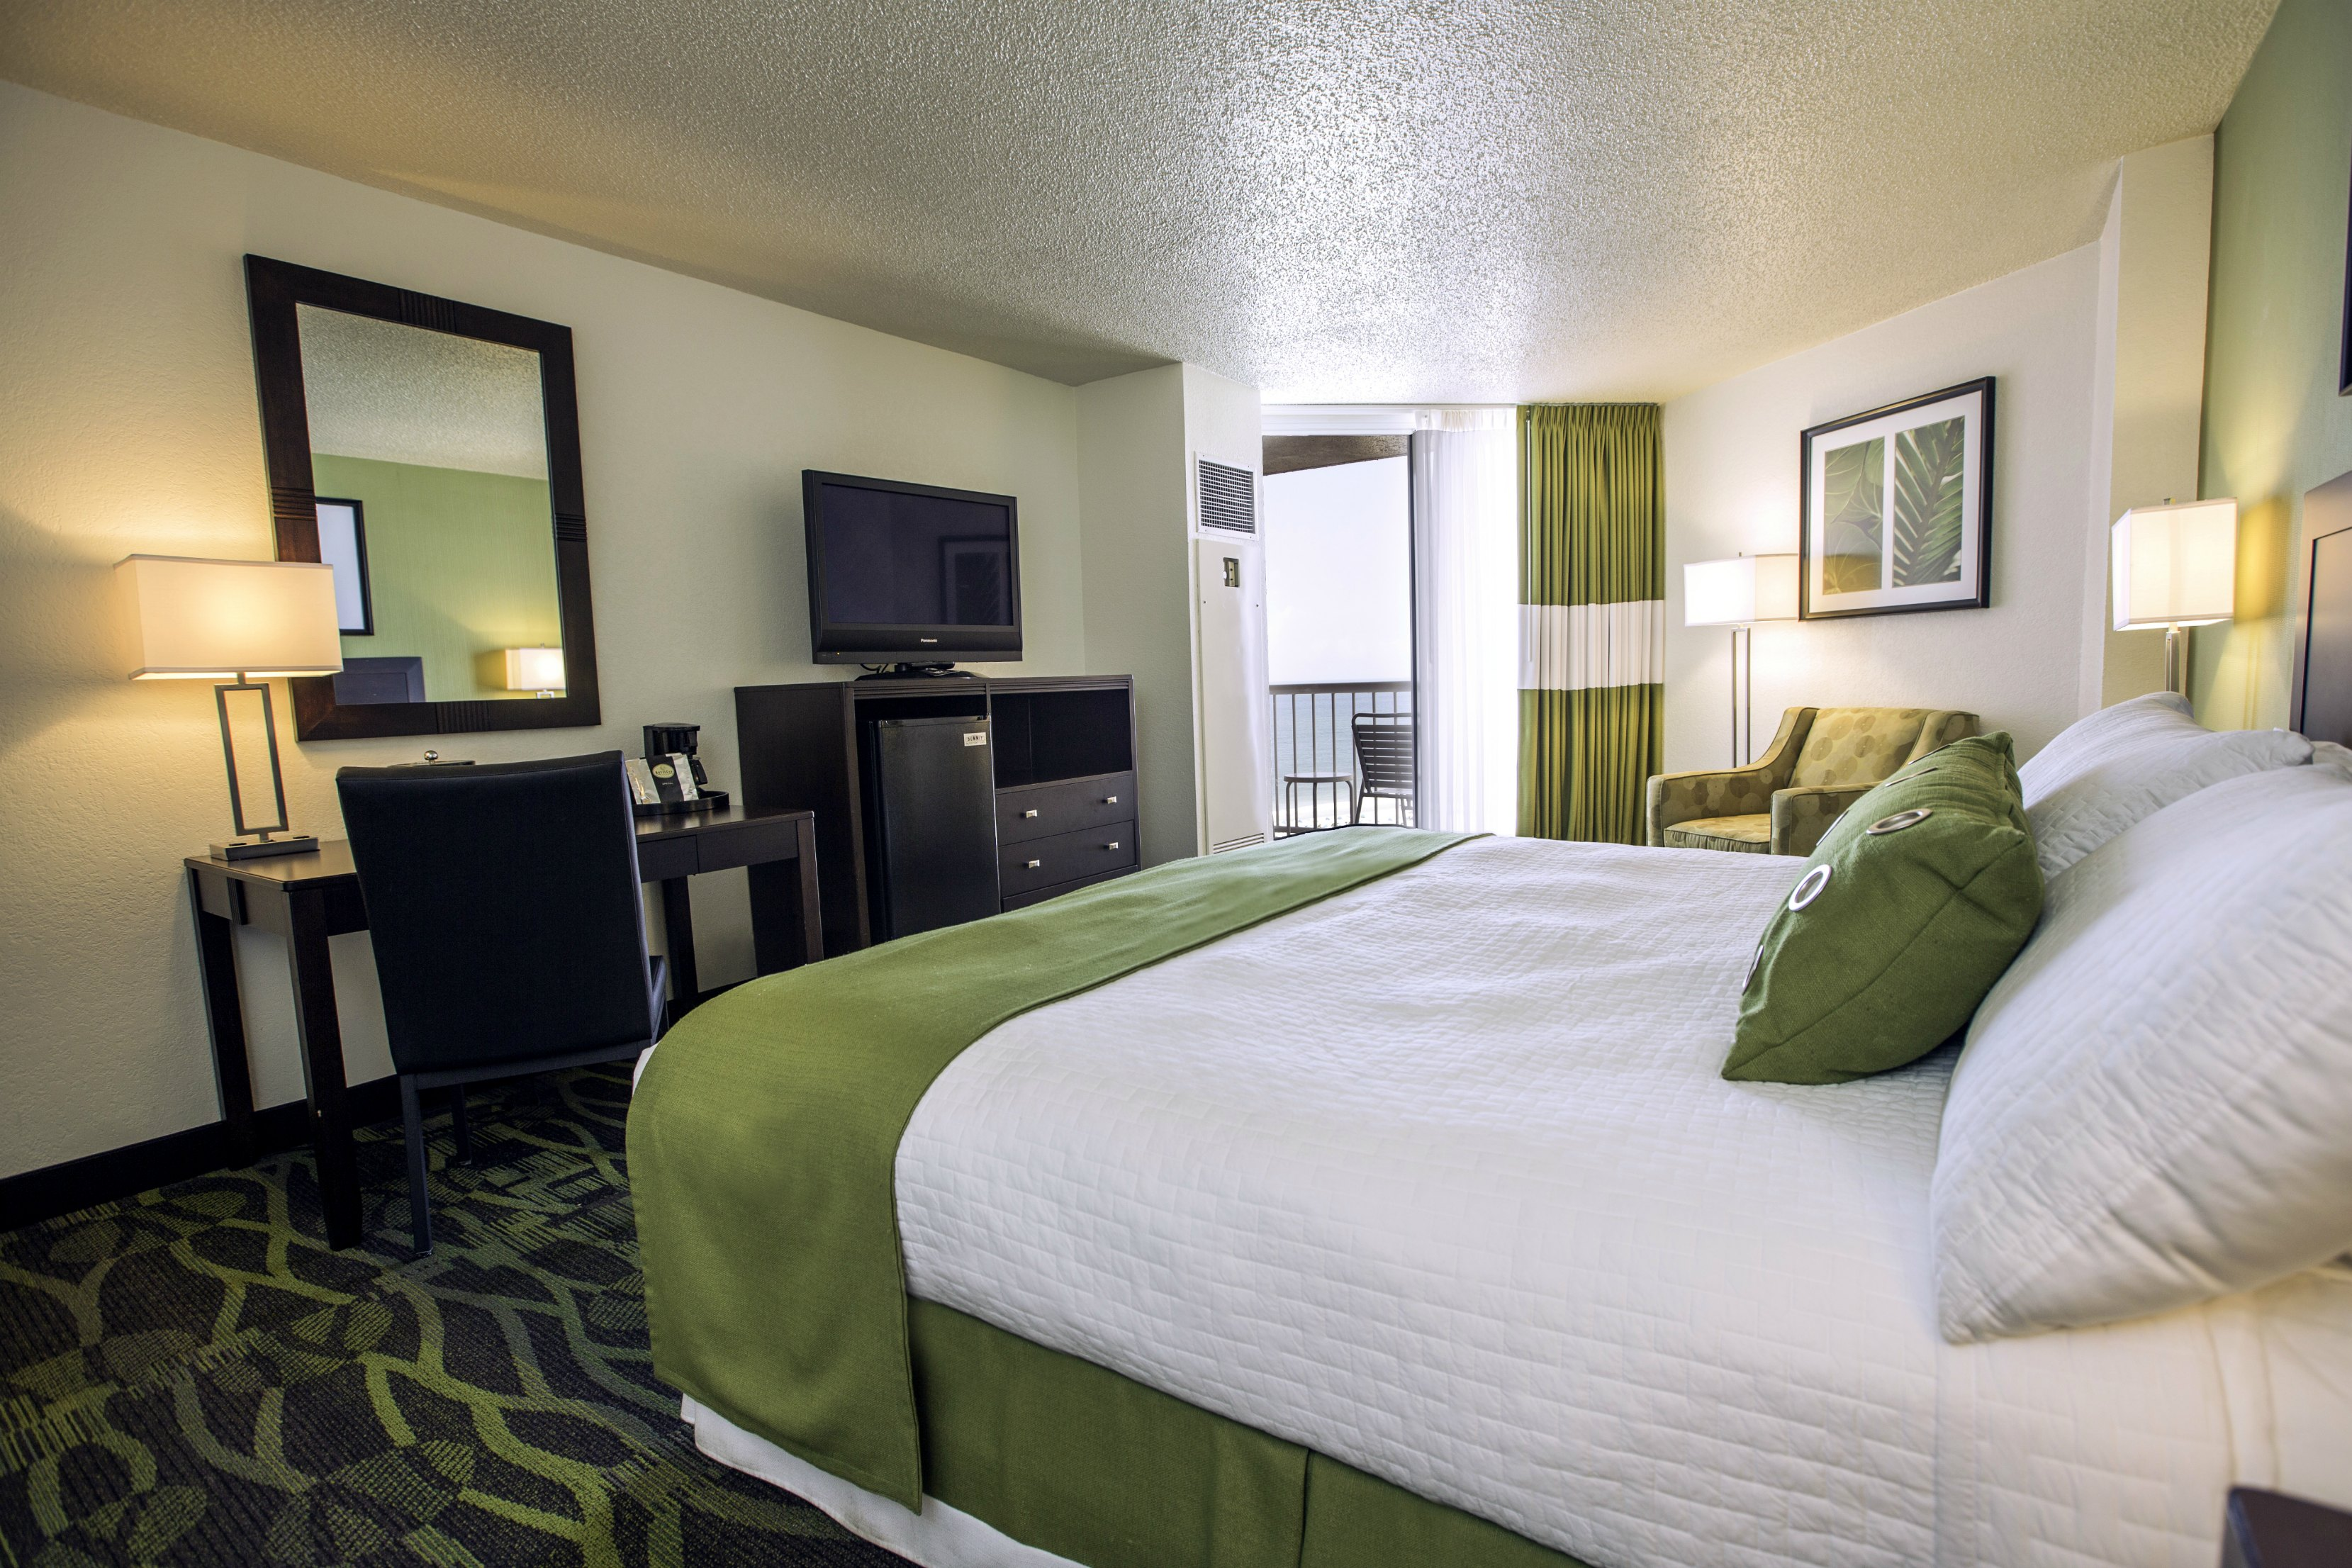 Perdido Beach Angle View Room featuring a King bed